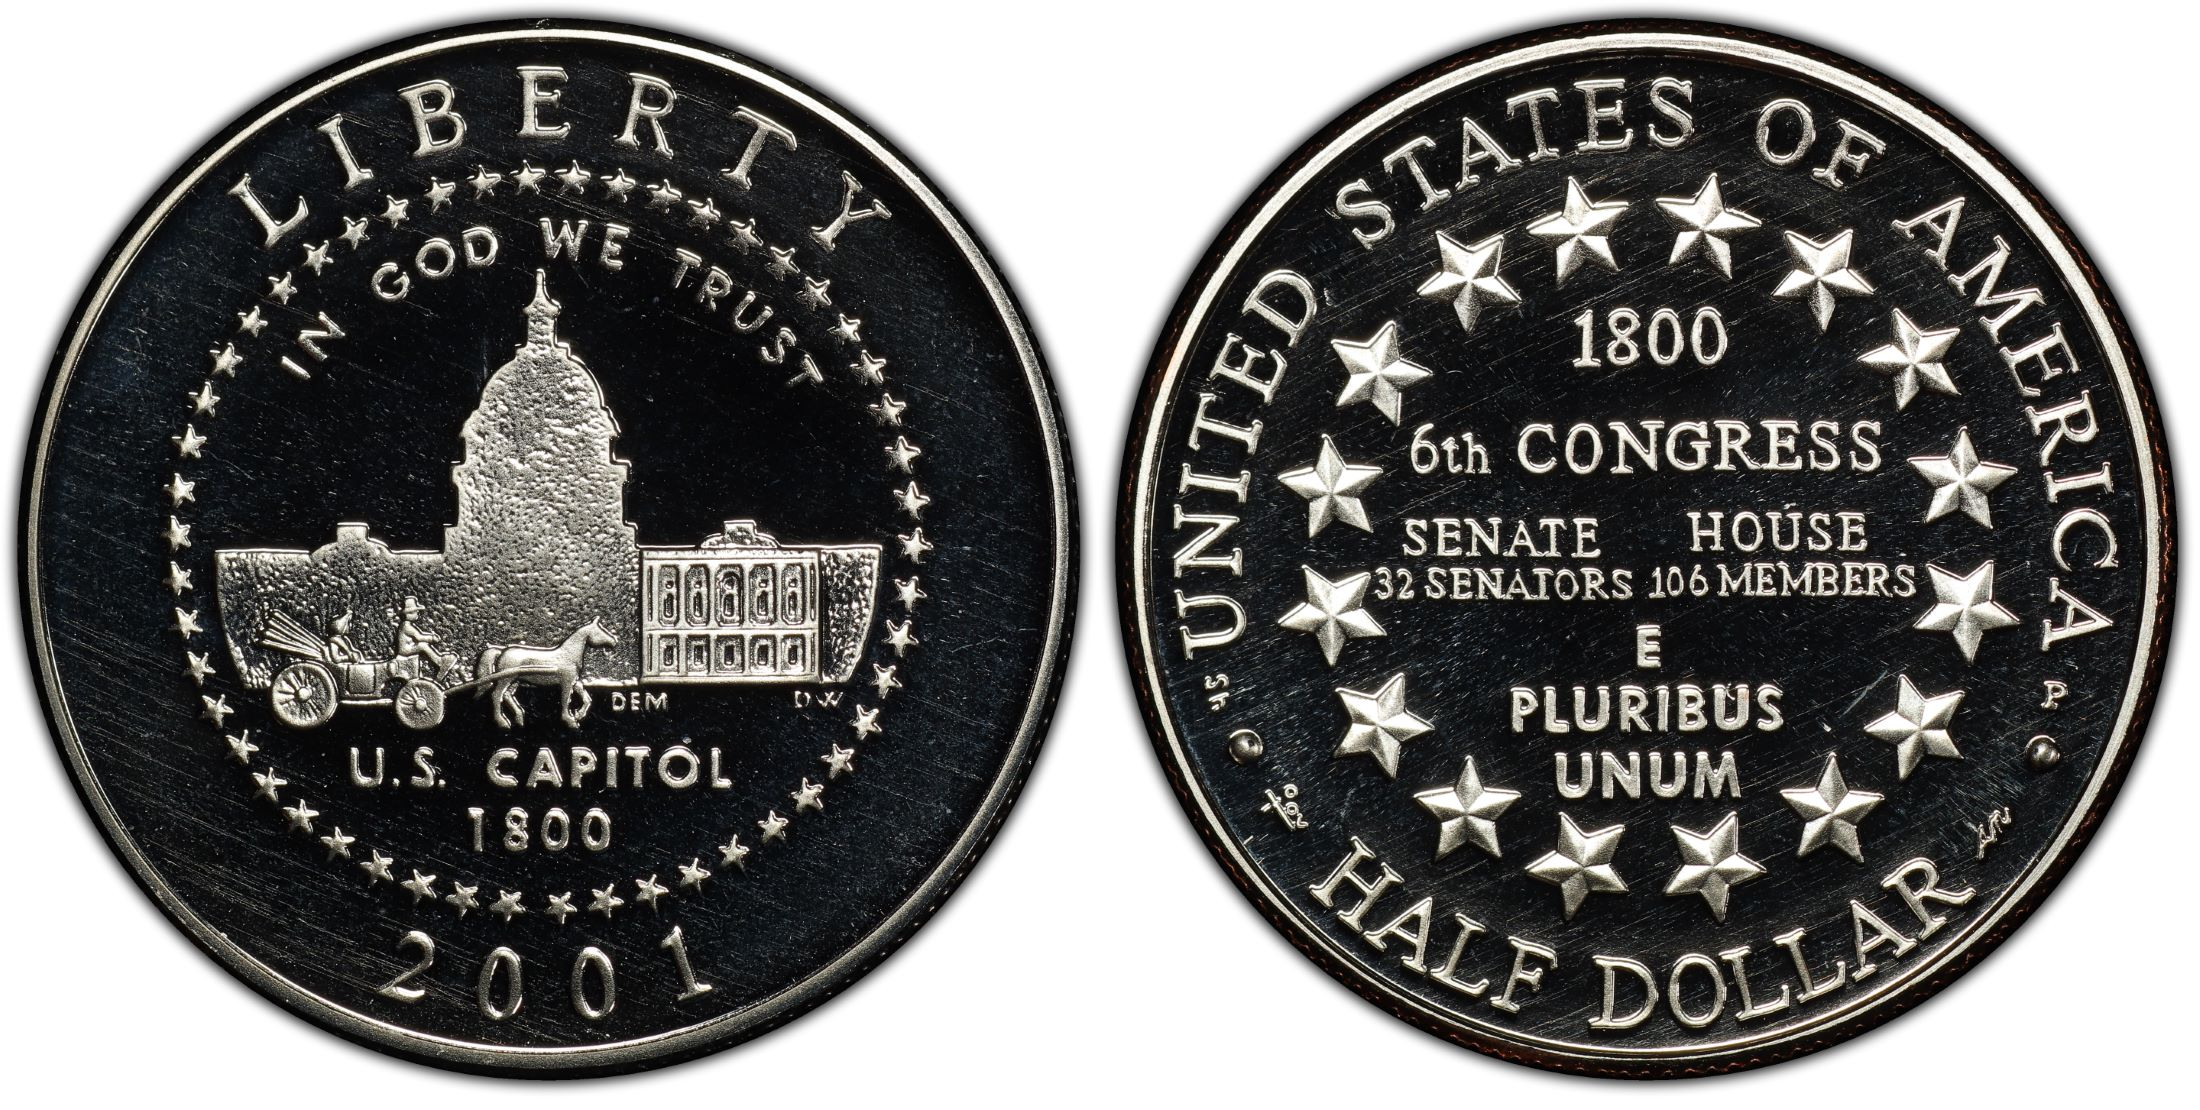 2001 P Capitol Visitor Center Proof Half Dollar 50 Cents Coin ONLY Commemorative